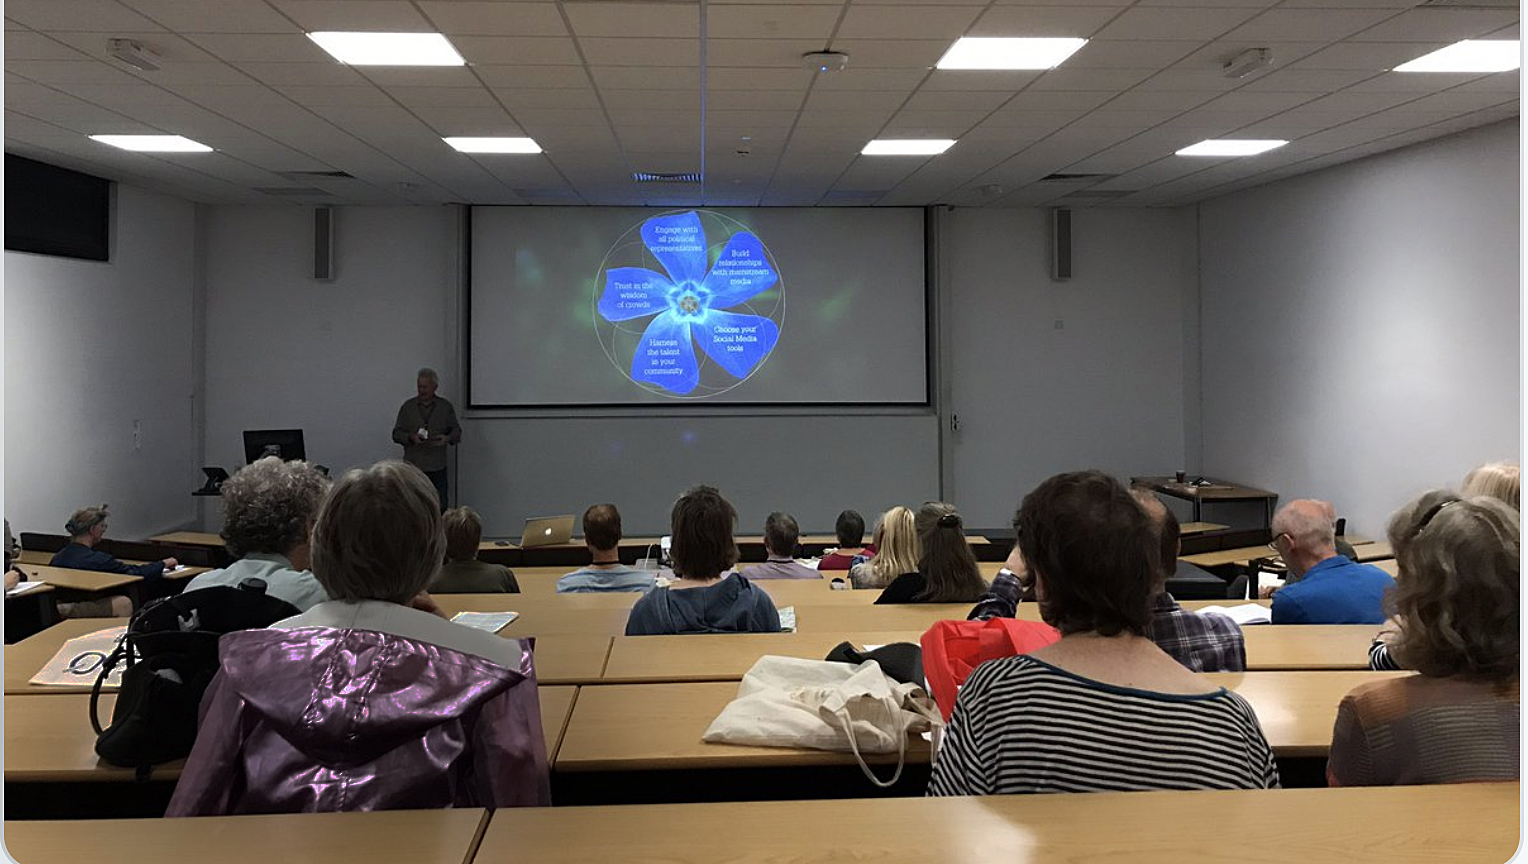 Lecturing at Warwick University on harnessing creativity within a community to effect social change